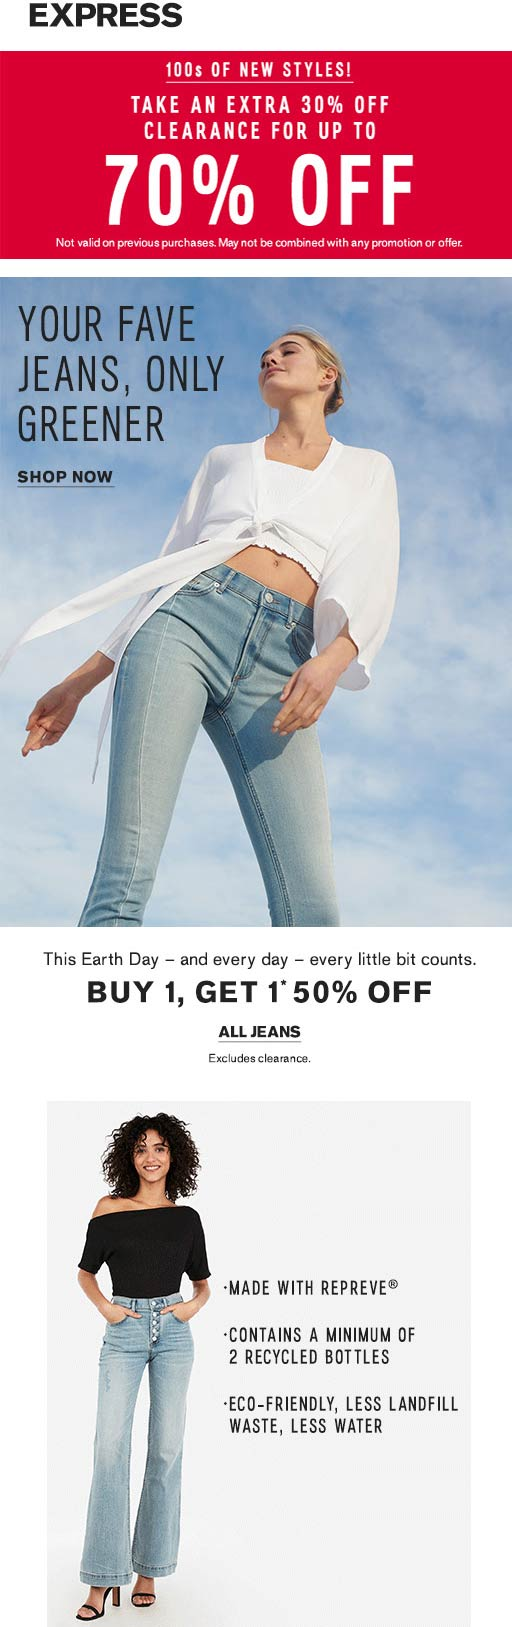 Express Coupon June 2019 Extra 30% off clearance & more at Express, ditto online